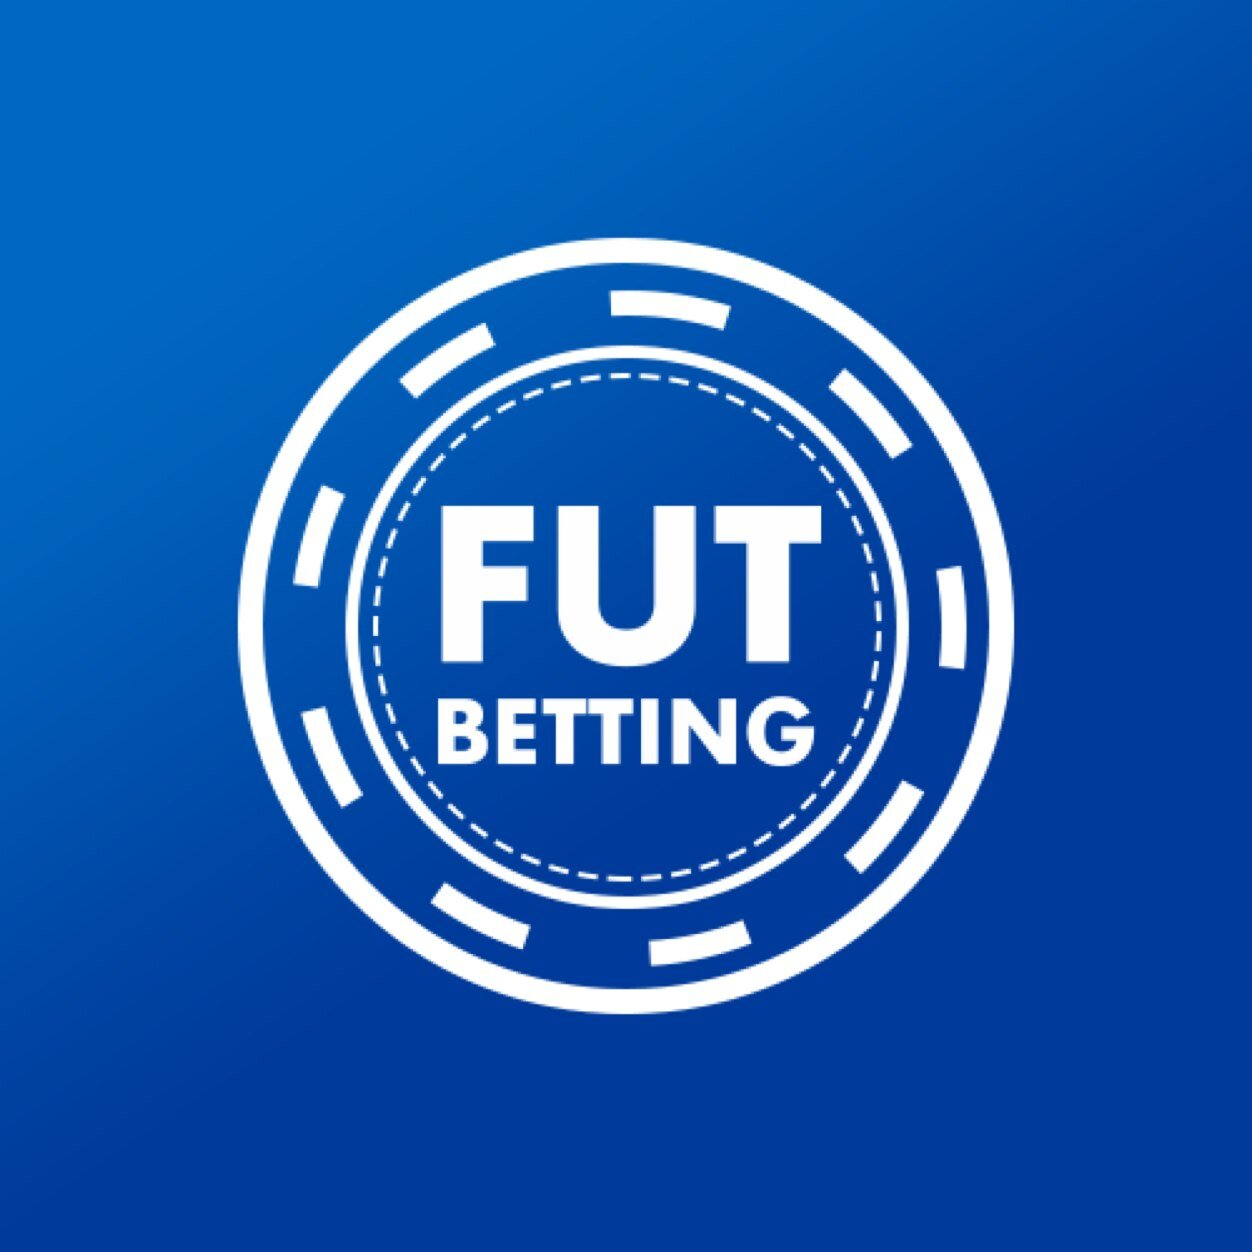 Ut coin betting coral betting slips online